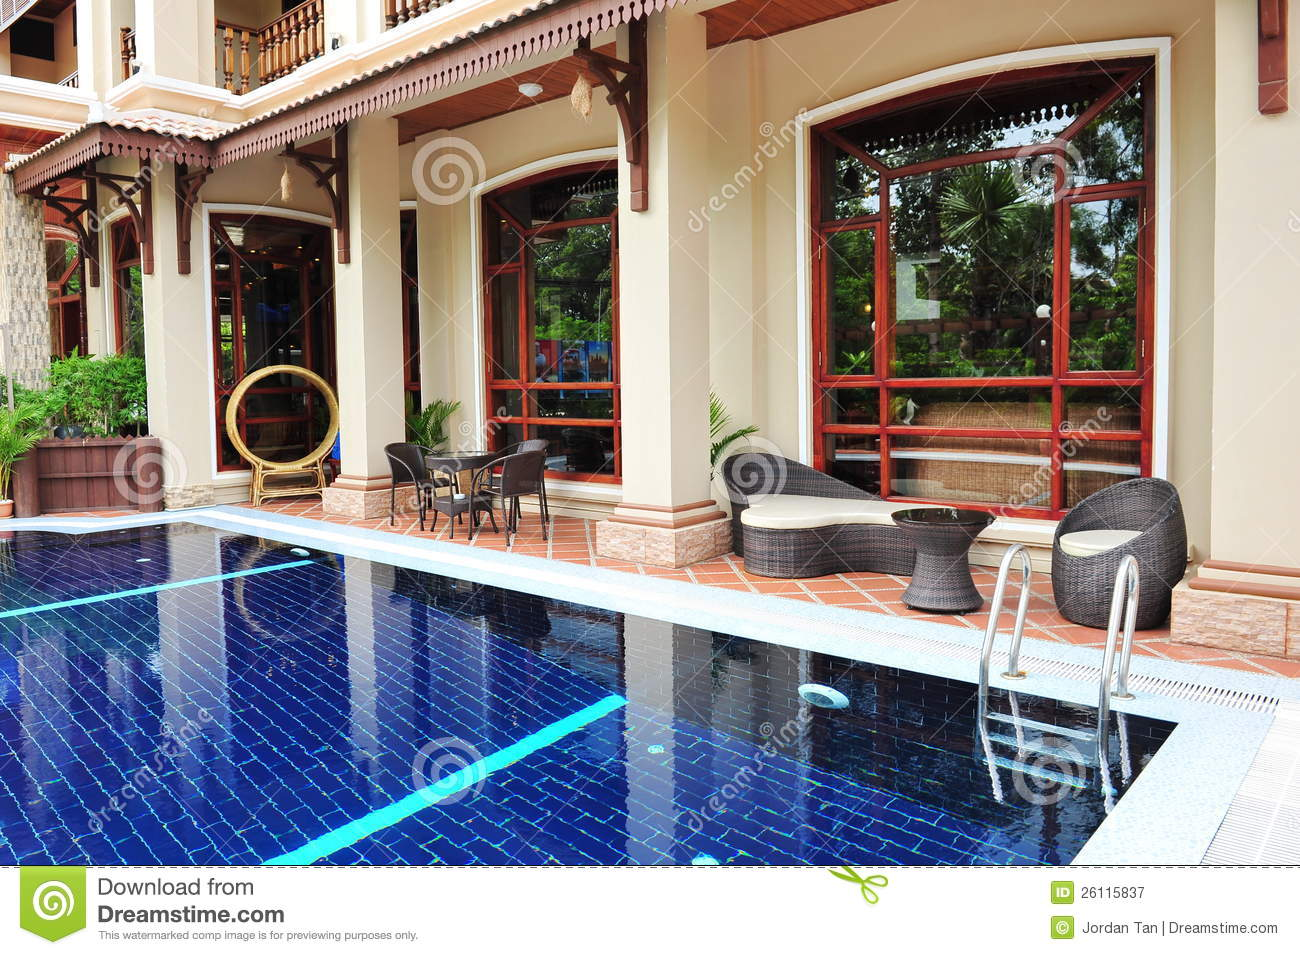 Resort swimming pool and dining area royalty free stock photography image 26115837 - Pool dining ...